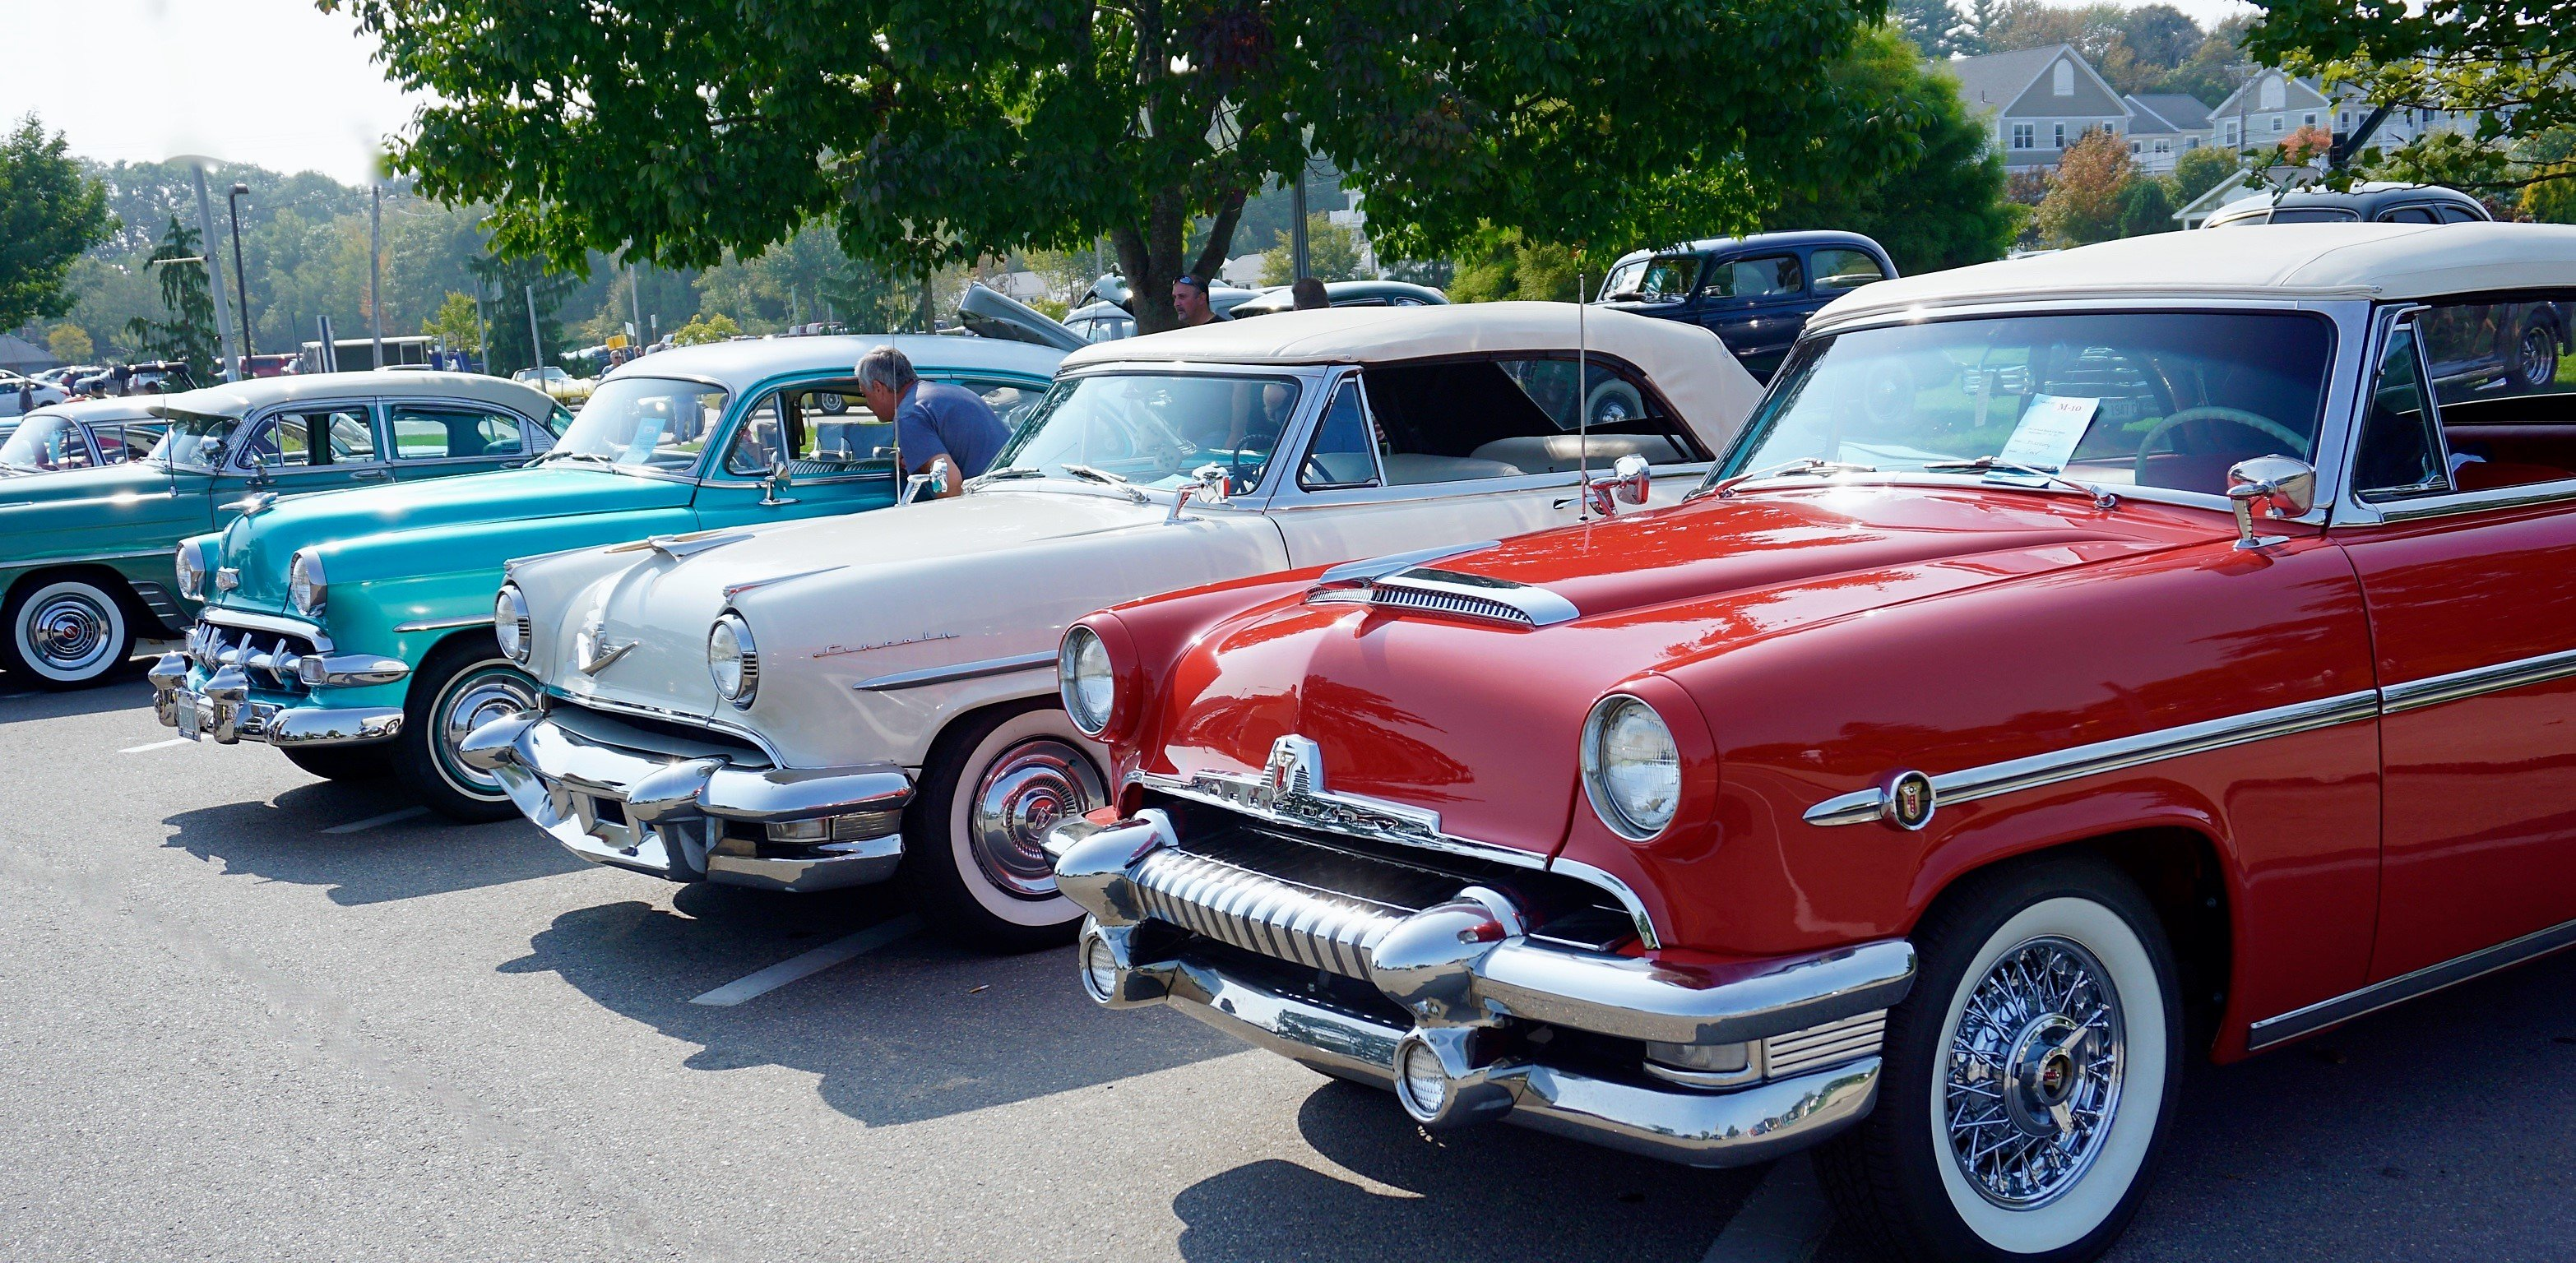 Cars On Line >> Special Guest To Attend Annual Old Orchard Beach Car Show